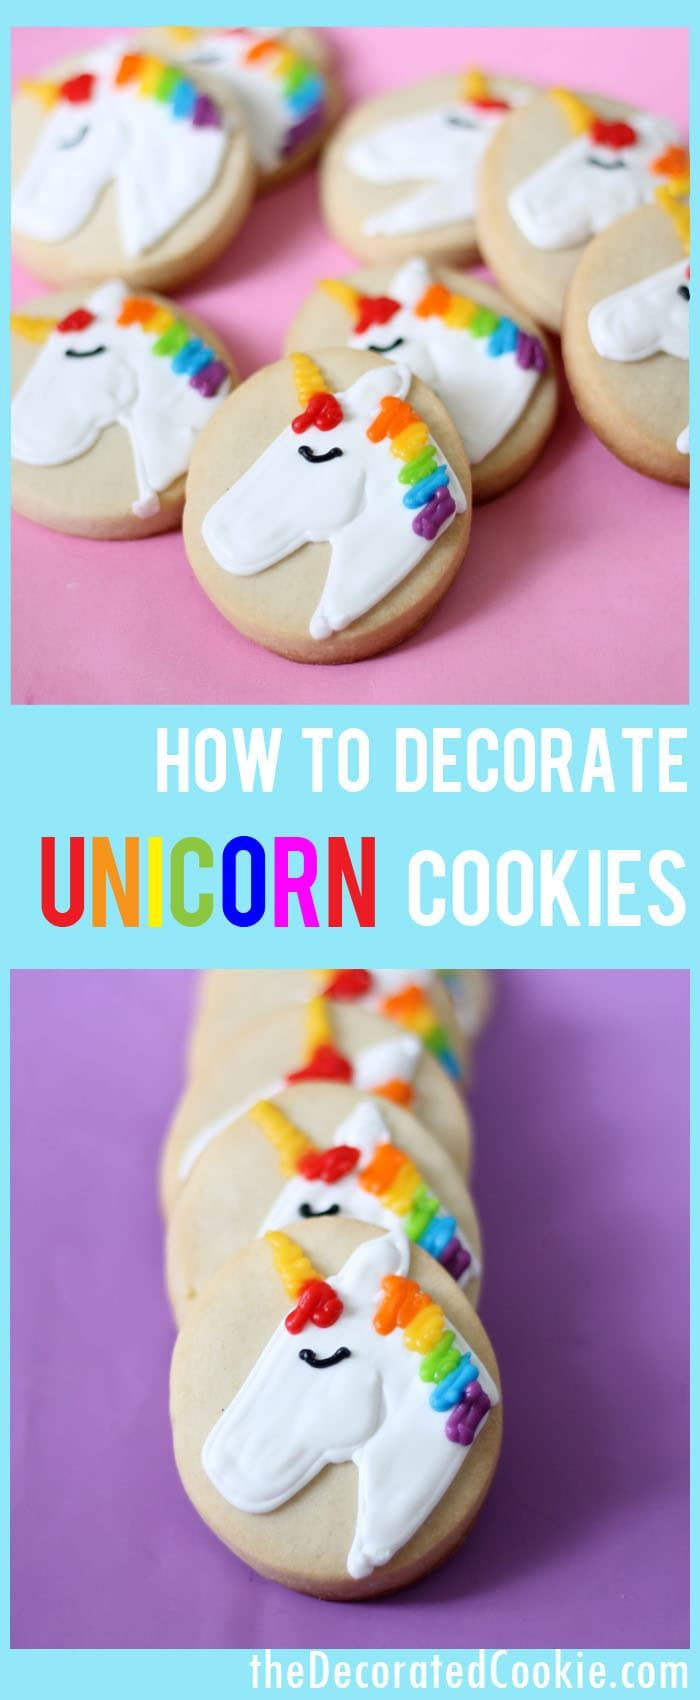 How to decorate simple unicorn cookies on ovals or circles. Unicorn food, fun food for a rainbow party.